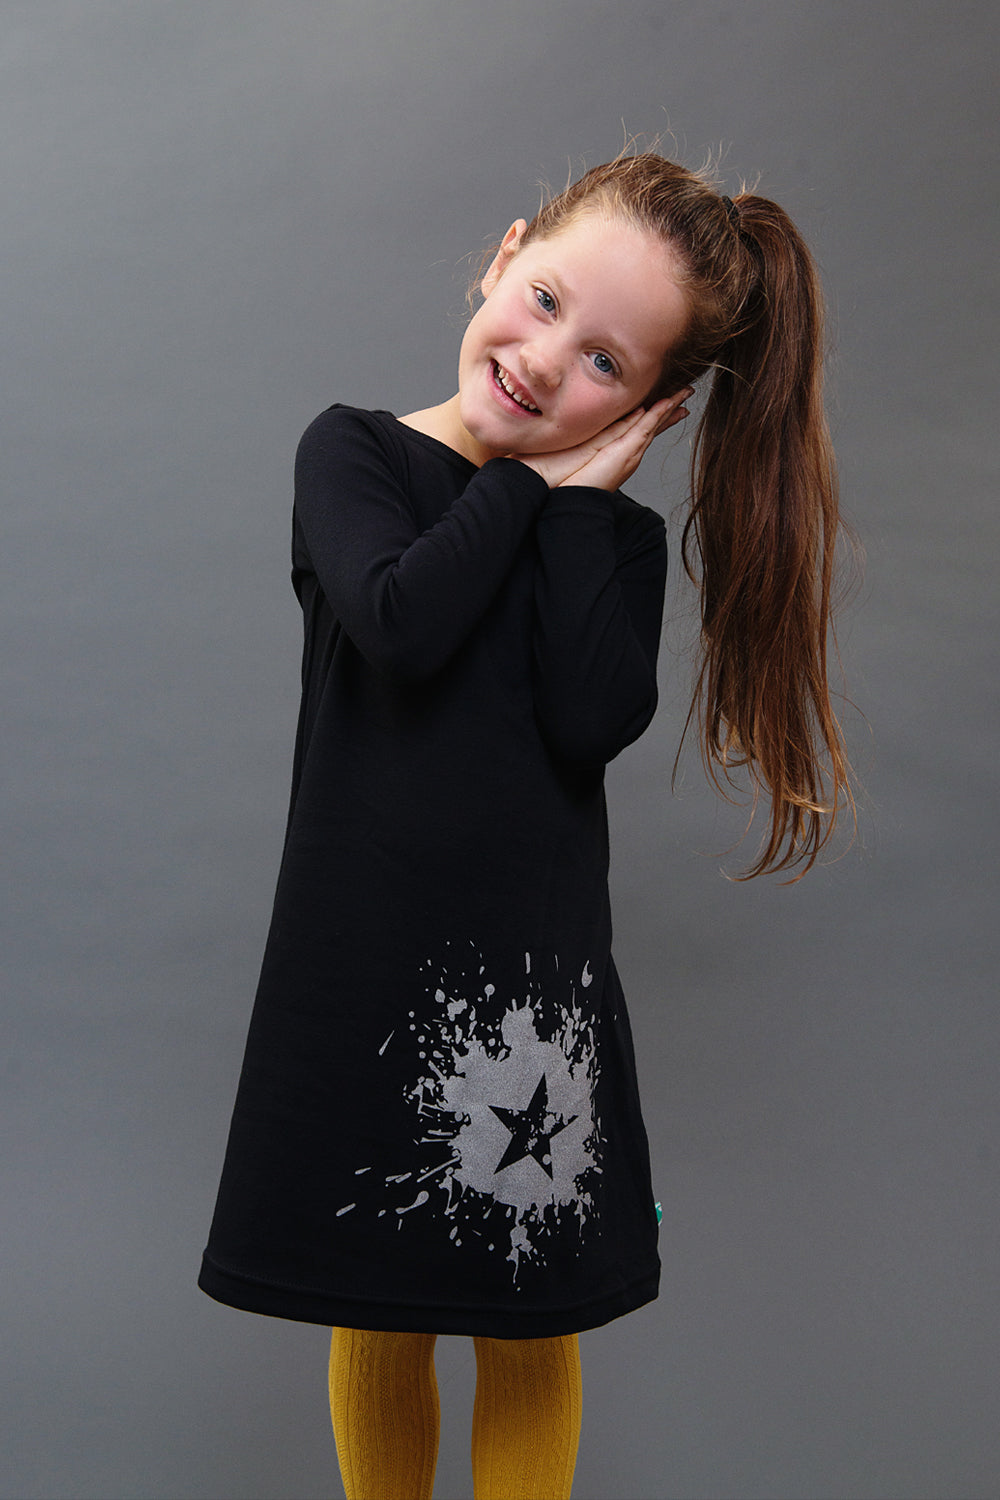 100% cotton, super soft black star splat dress. Made and designed in Britain using chemical free inks